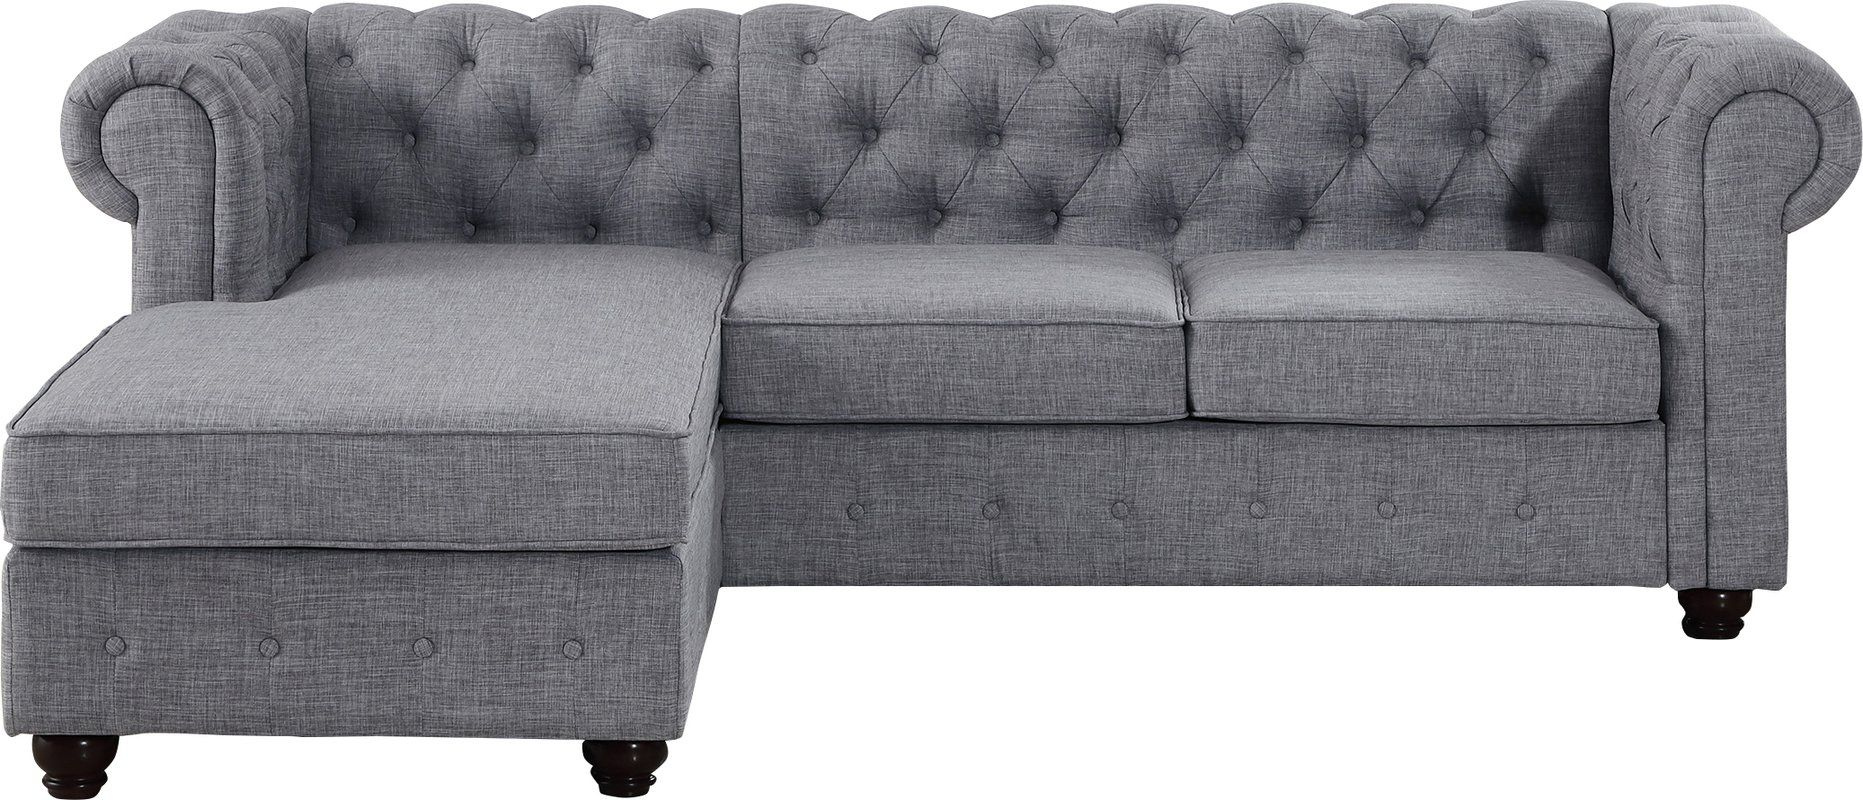 Quitaque Left Hand Facing Sectional U Shaped Sectional